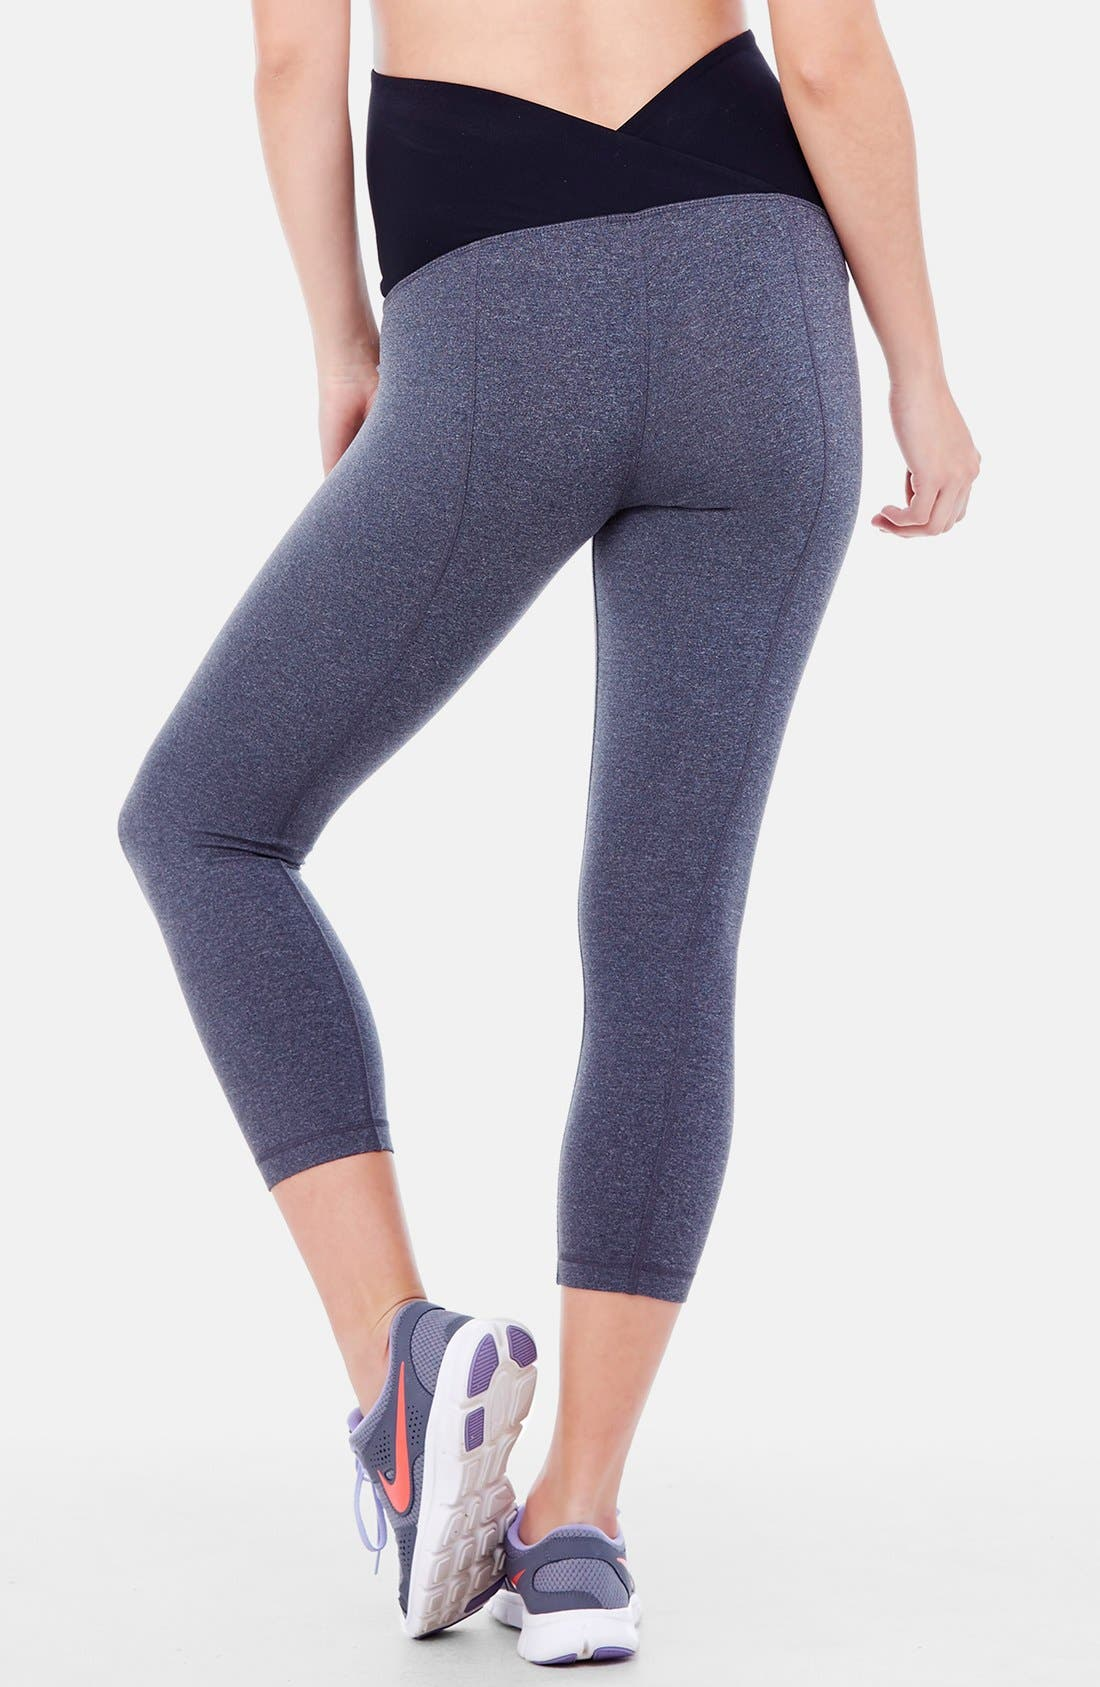 INGRID & ISABEL<SUP>®</SUP>, Active Maternity Capri Pants with Crossover Panel, Alternate thumbnail 4, color, DARK HEATHER GREY